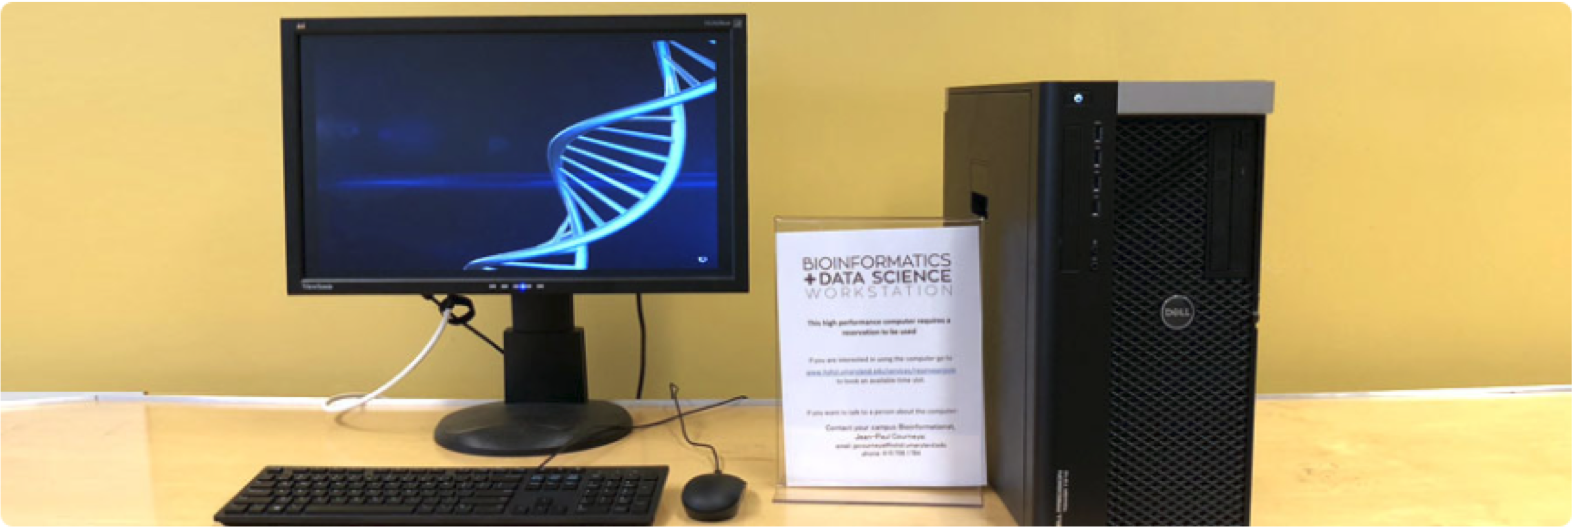 An image of the Bioinformatics and Data Science Workstation